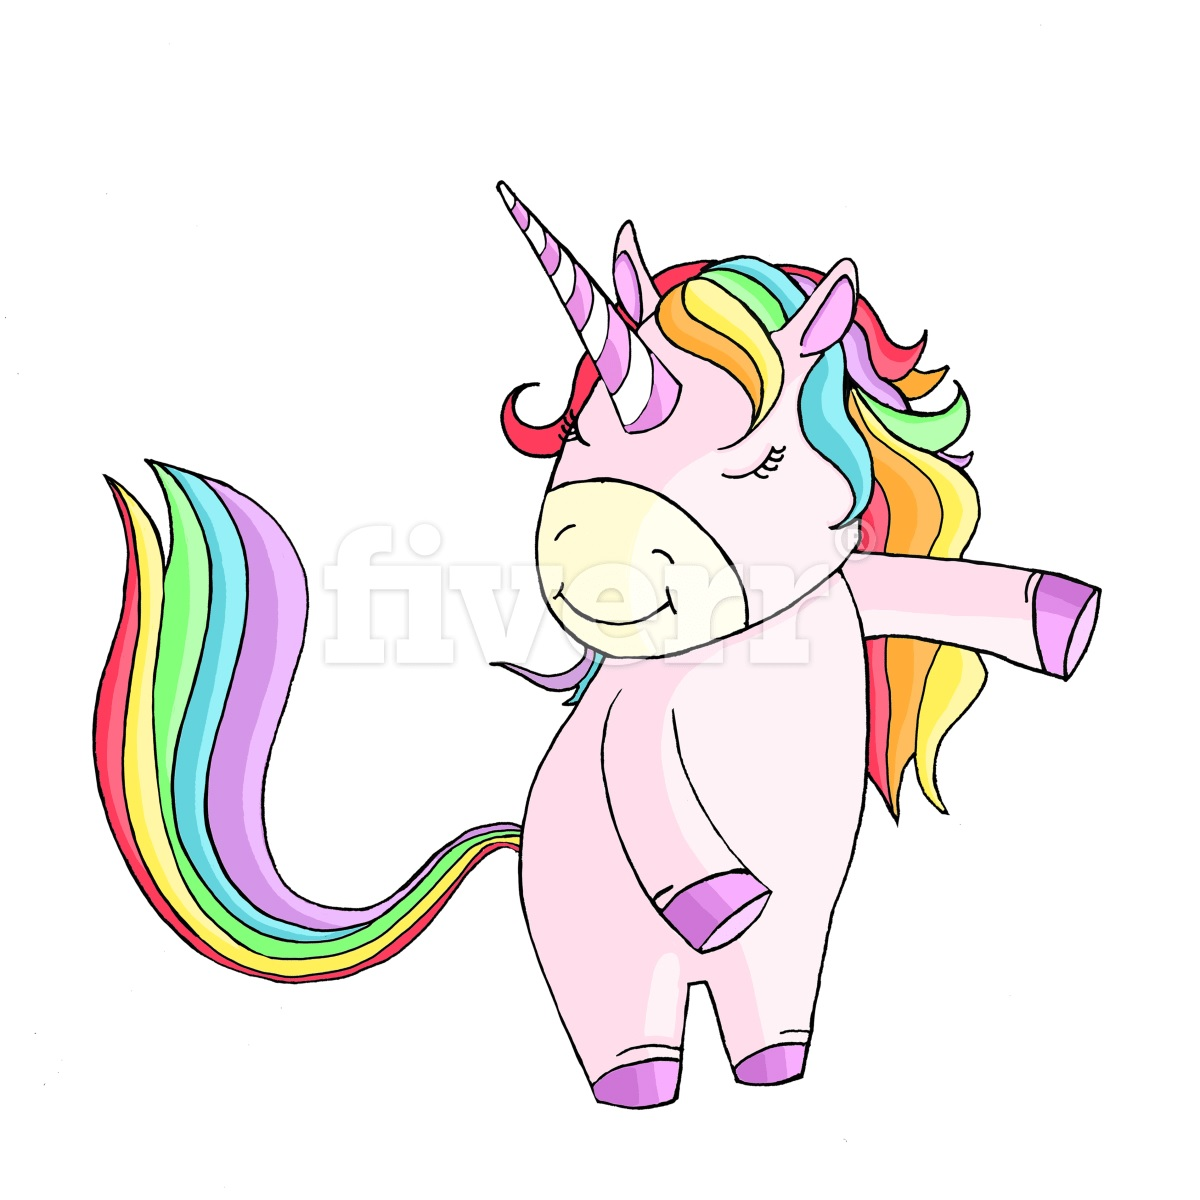 Unicorn Illustration done for a client on Fiverr: Illustrated in Photoshop